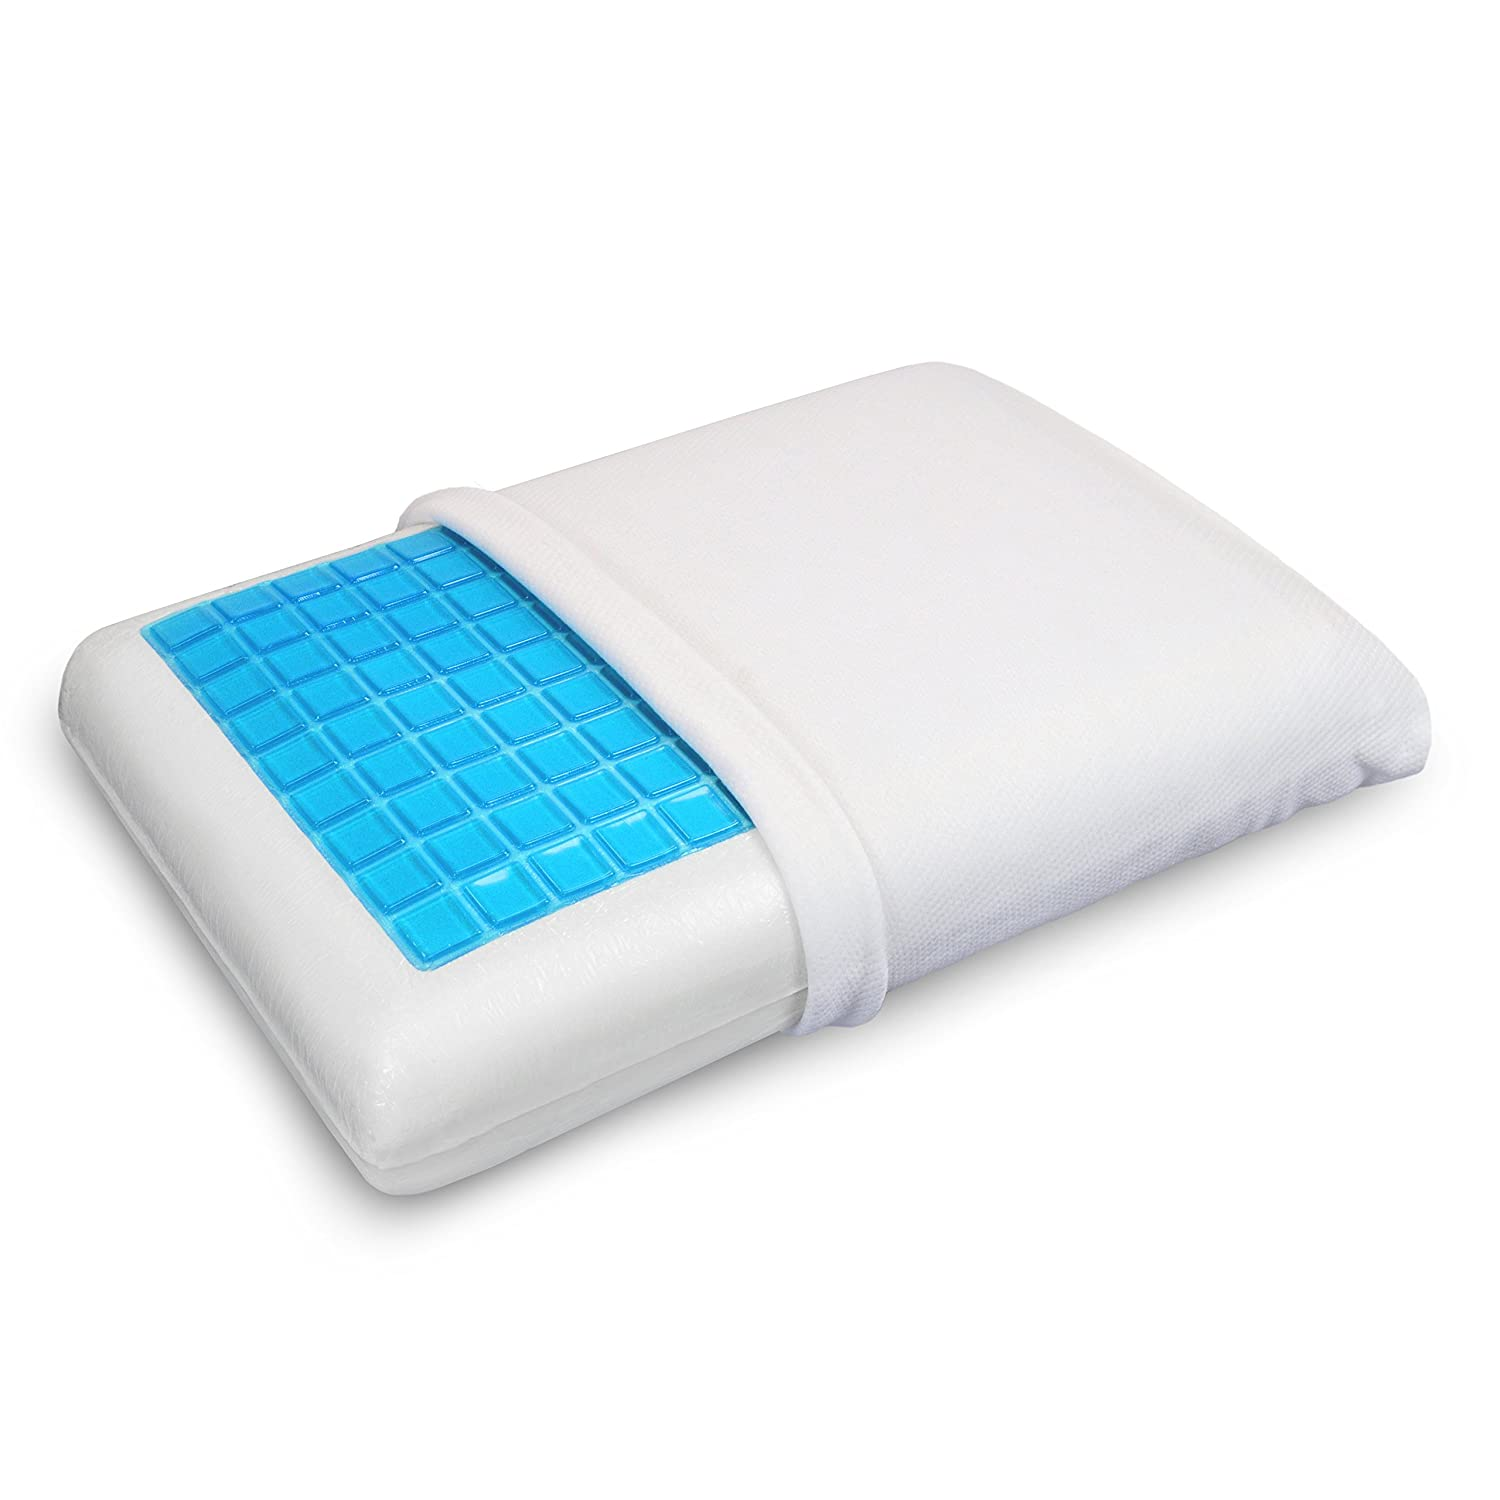 The Best Cooling Pillow 4